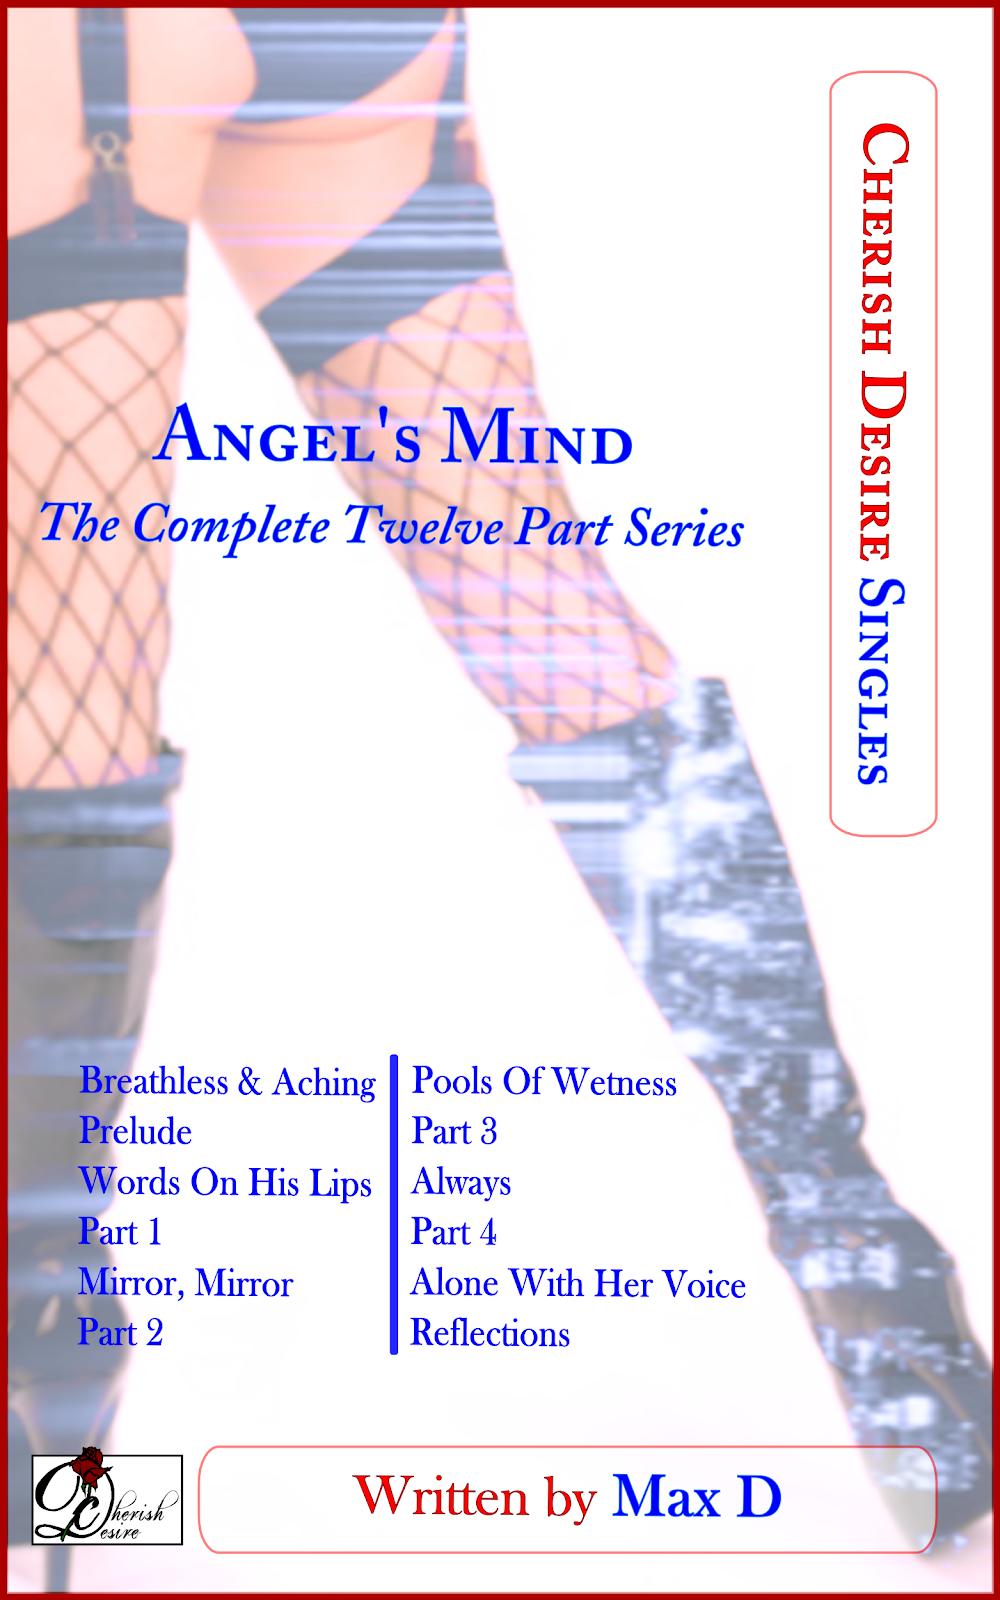 Cherish Desire Singles: Angel's Mind (The Complete Twelve Part Series), Angel, Tom, Max D, erotica